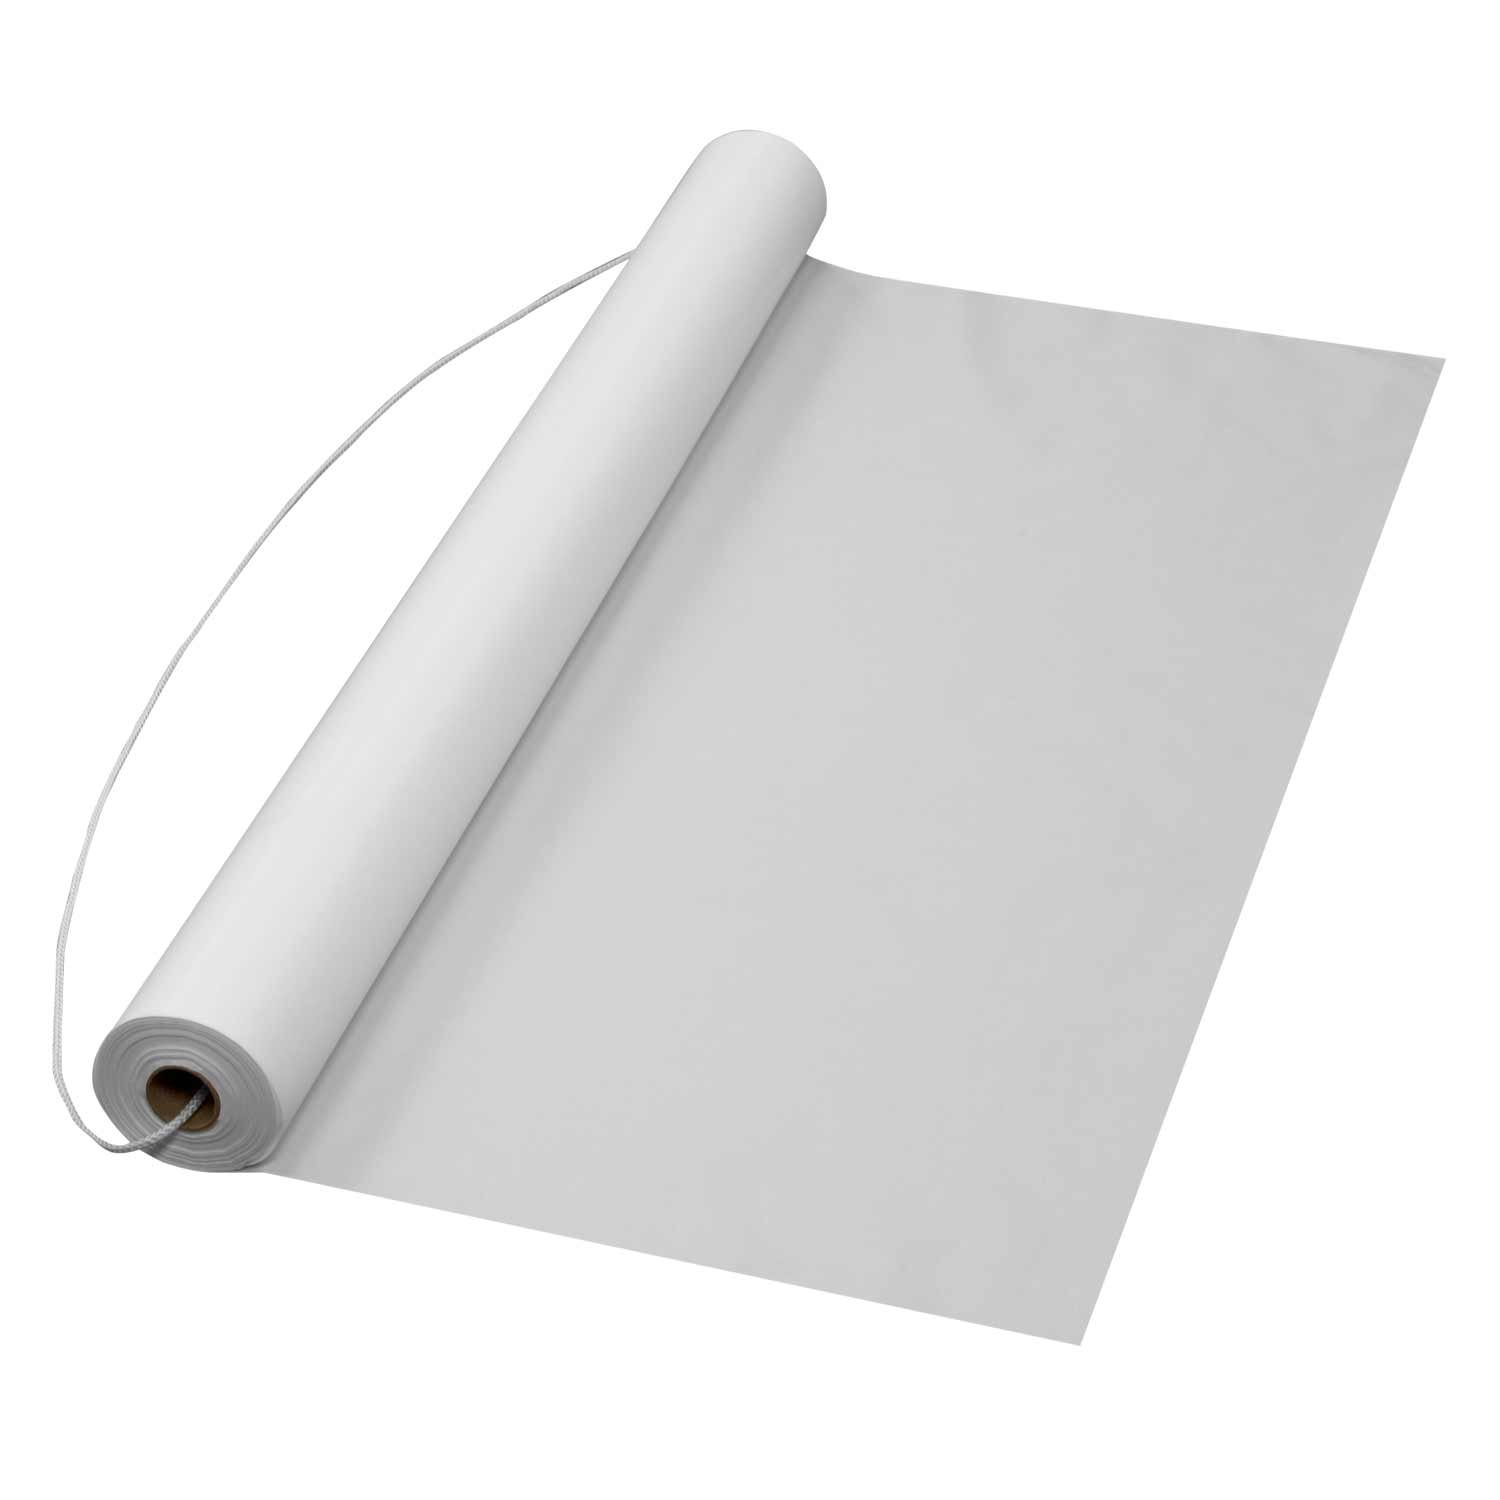 Party Essentials AR75 Plastic Aisle Runners, 75' Length x 36'' Width, White (Pack of 6)